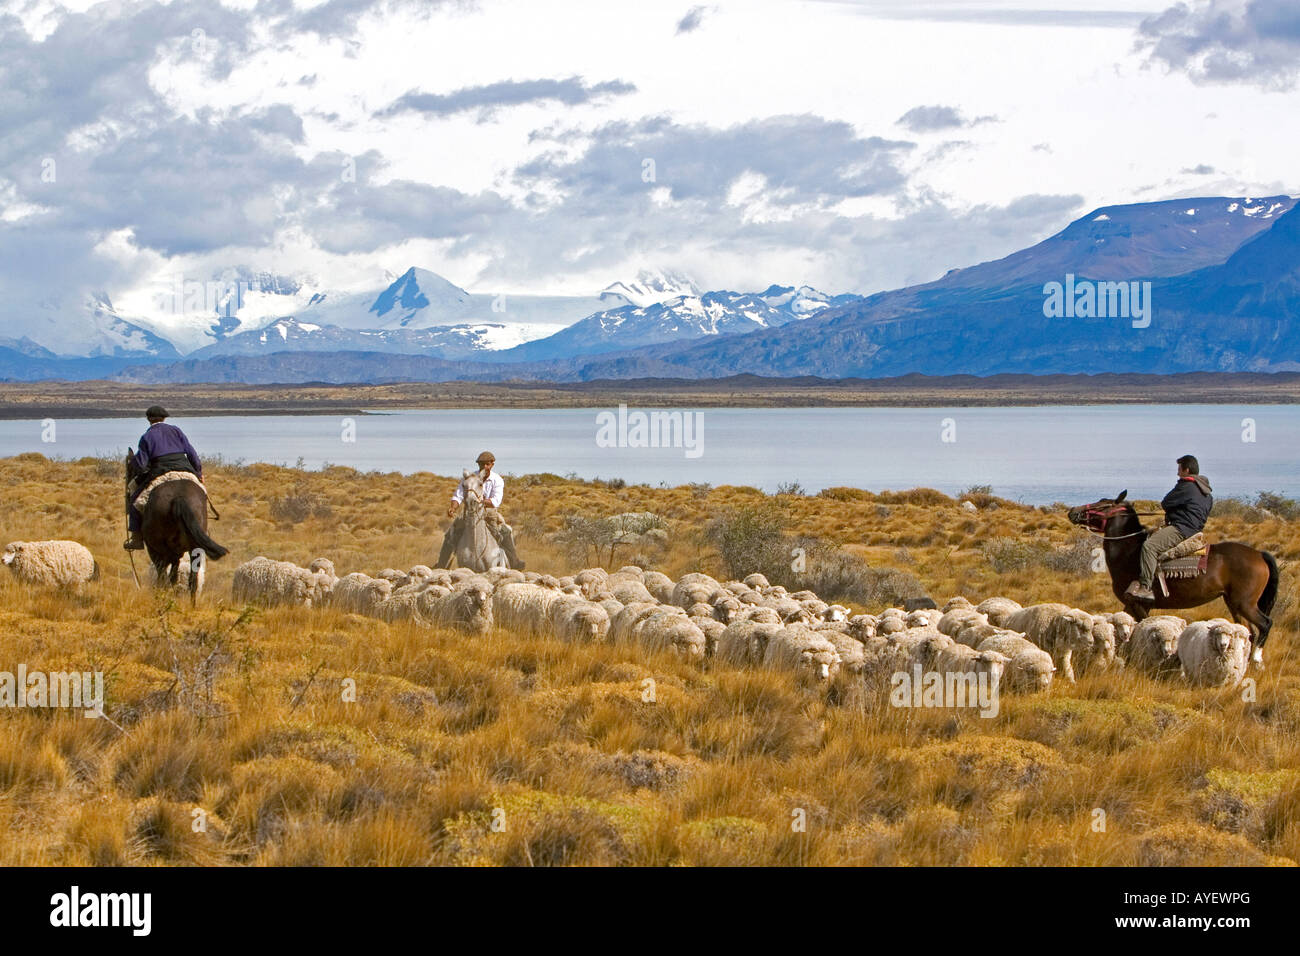 Gauchos herd sheep near Lake Argentino on the Patagonian grasslands near El Calafate Argentina - Stock Image